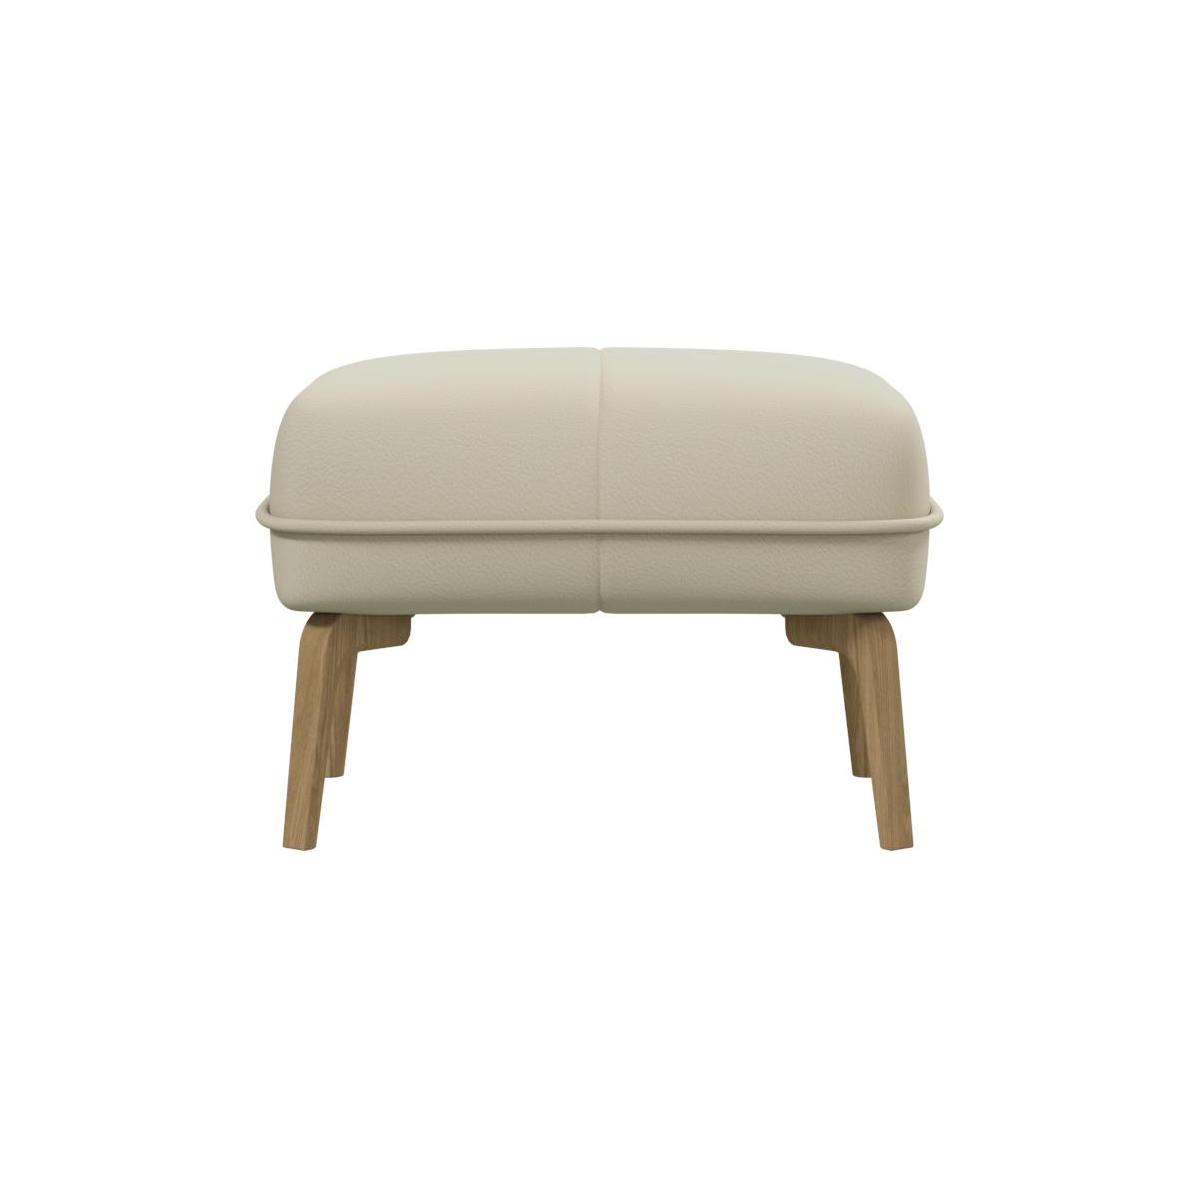 Footstool in Savoy semi-aniline leather, off white and natural oak feet n°2